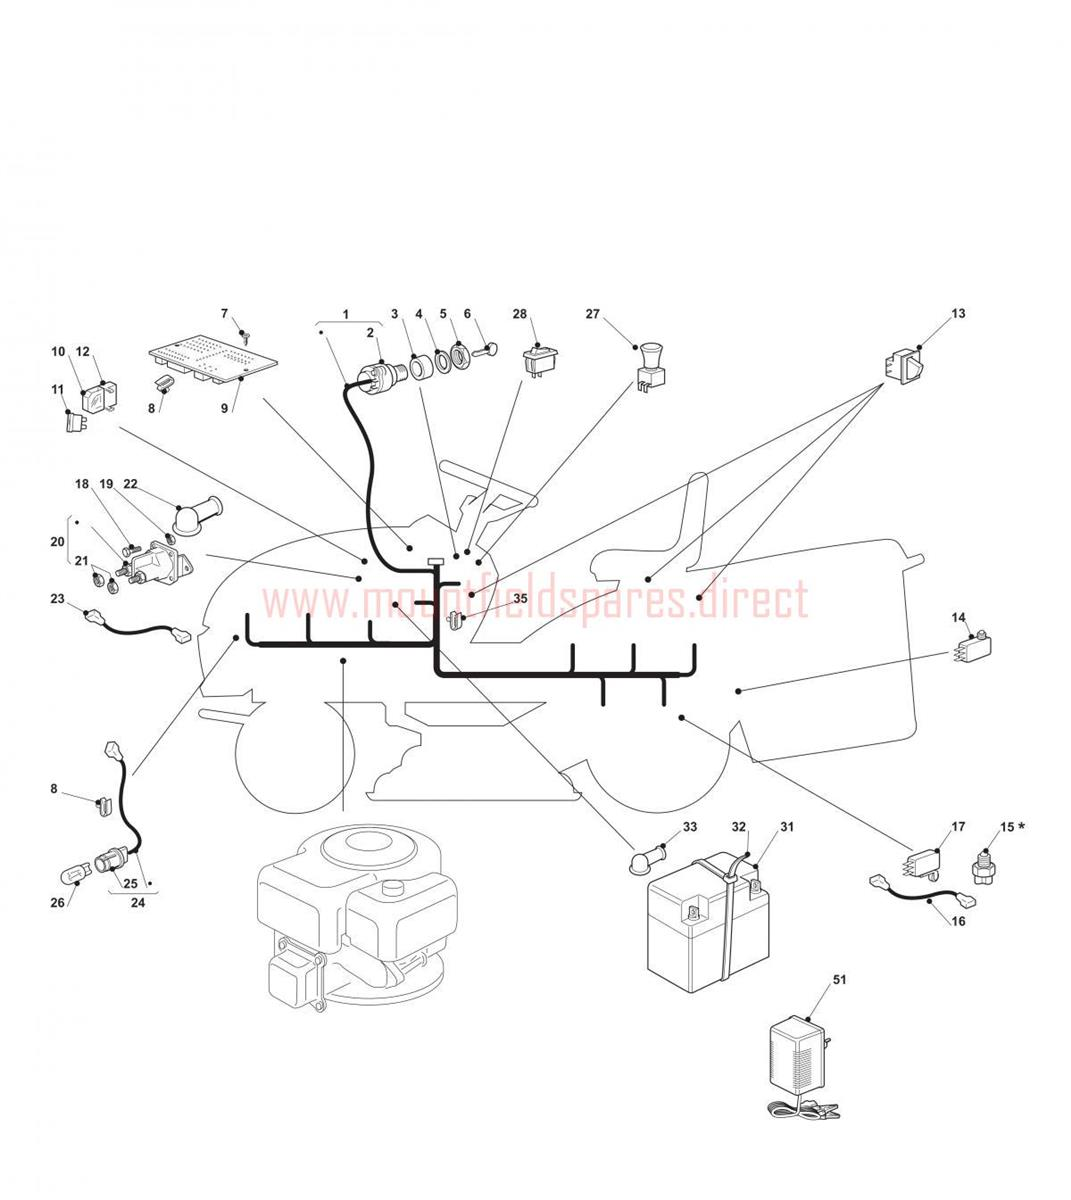 Electrical System Assembly Mountfield T35m 1436m 1436h 2008 Model T35 Wiring Diagram